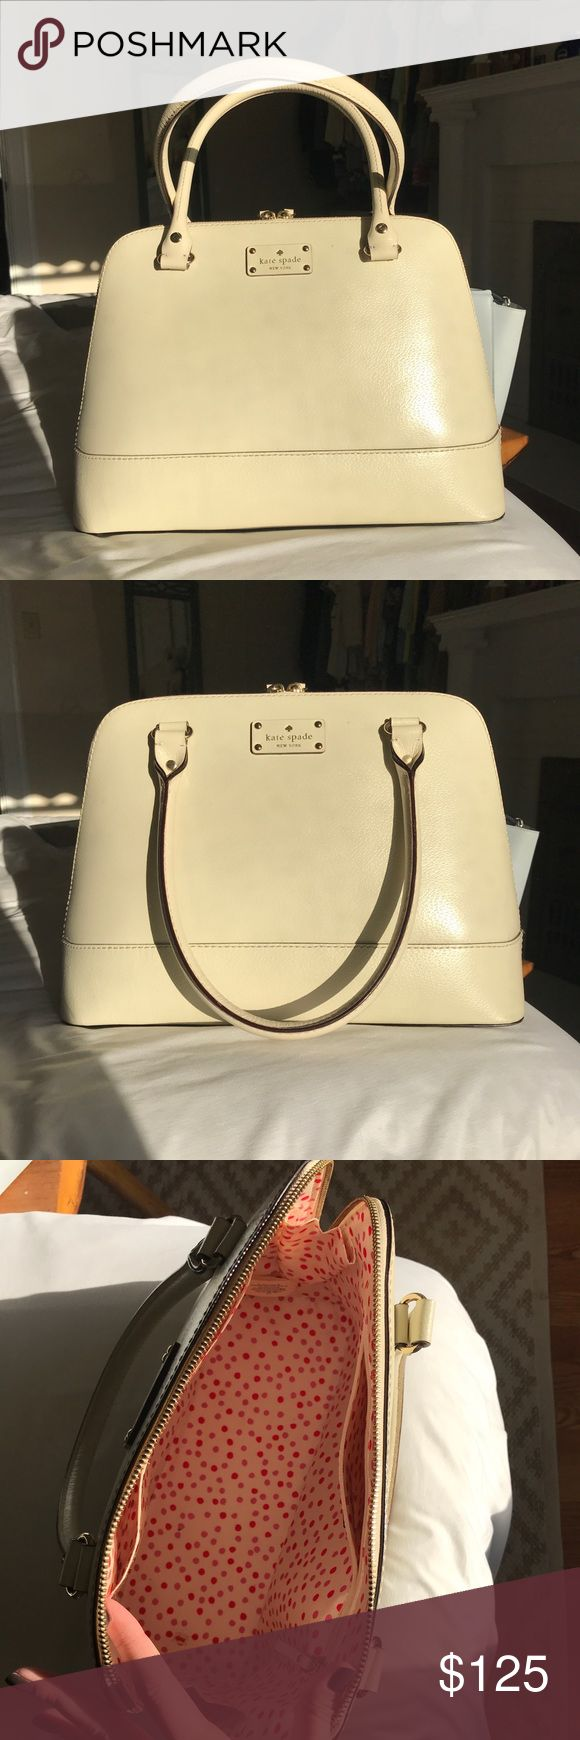 Kate Spade porcelain Wellesley Rachelle Gently used Kate Spade Wellesley porcelain Rachelle. Small imperfection near emblem. I absolutely love this bag! It's a great size, holds its shape and has the convenient inner pockets that all Kate Spades have. I'm only selling it because I don't give it the love it deserves kate spade Bags Shoulder Bags